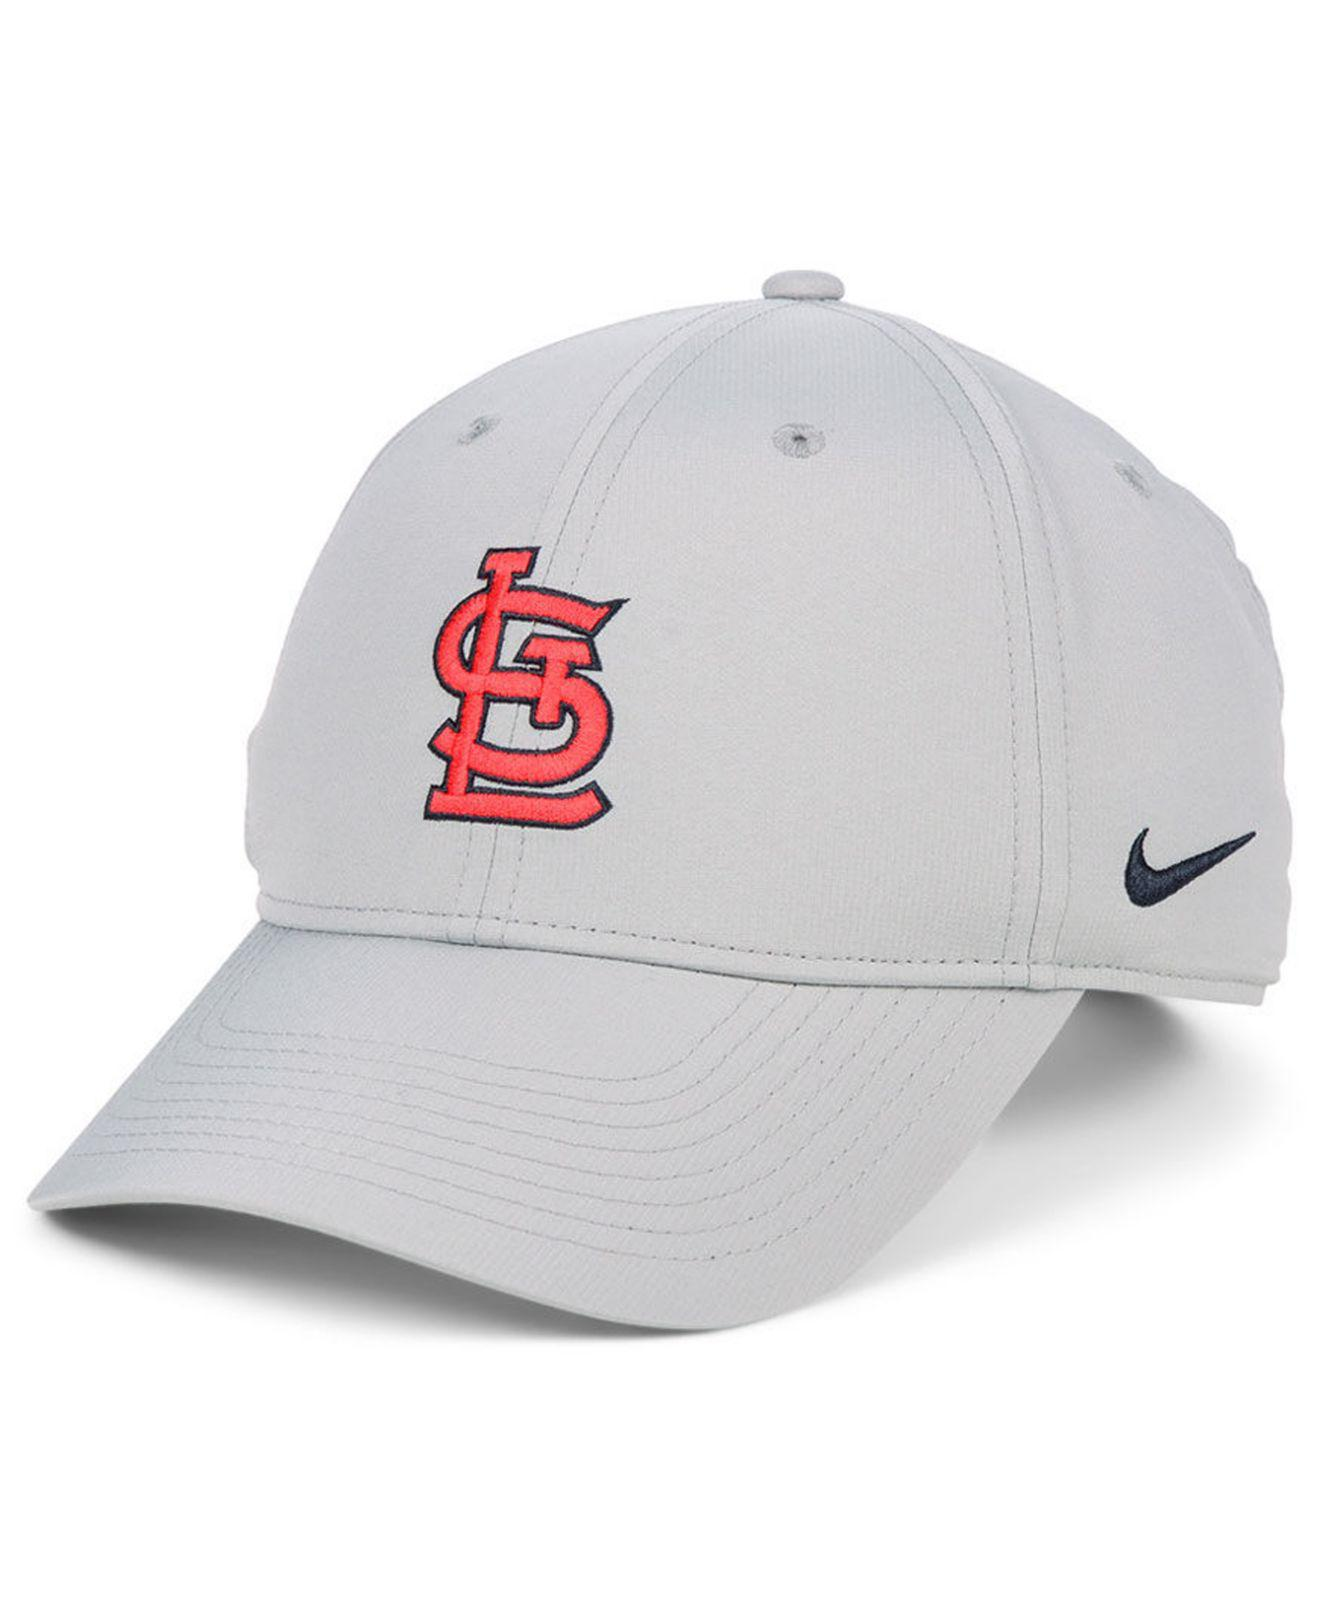 d057d4b6e Lyst - Nike St. Louis Cardinals Legacy Performance Cap in Gray for Men